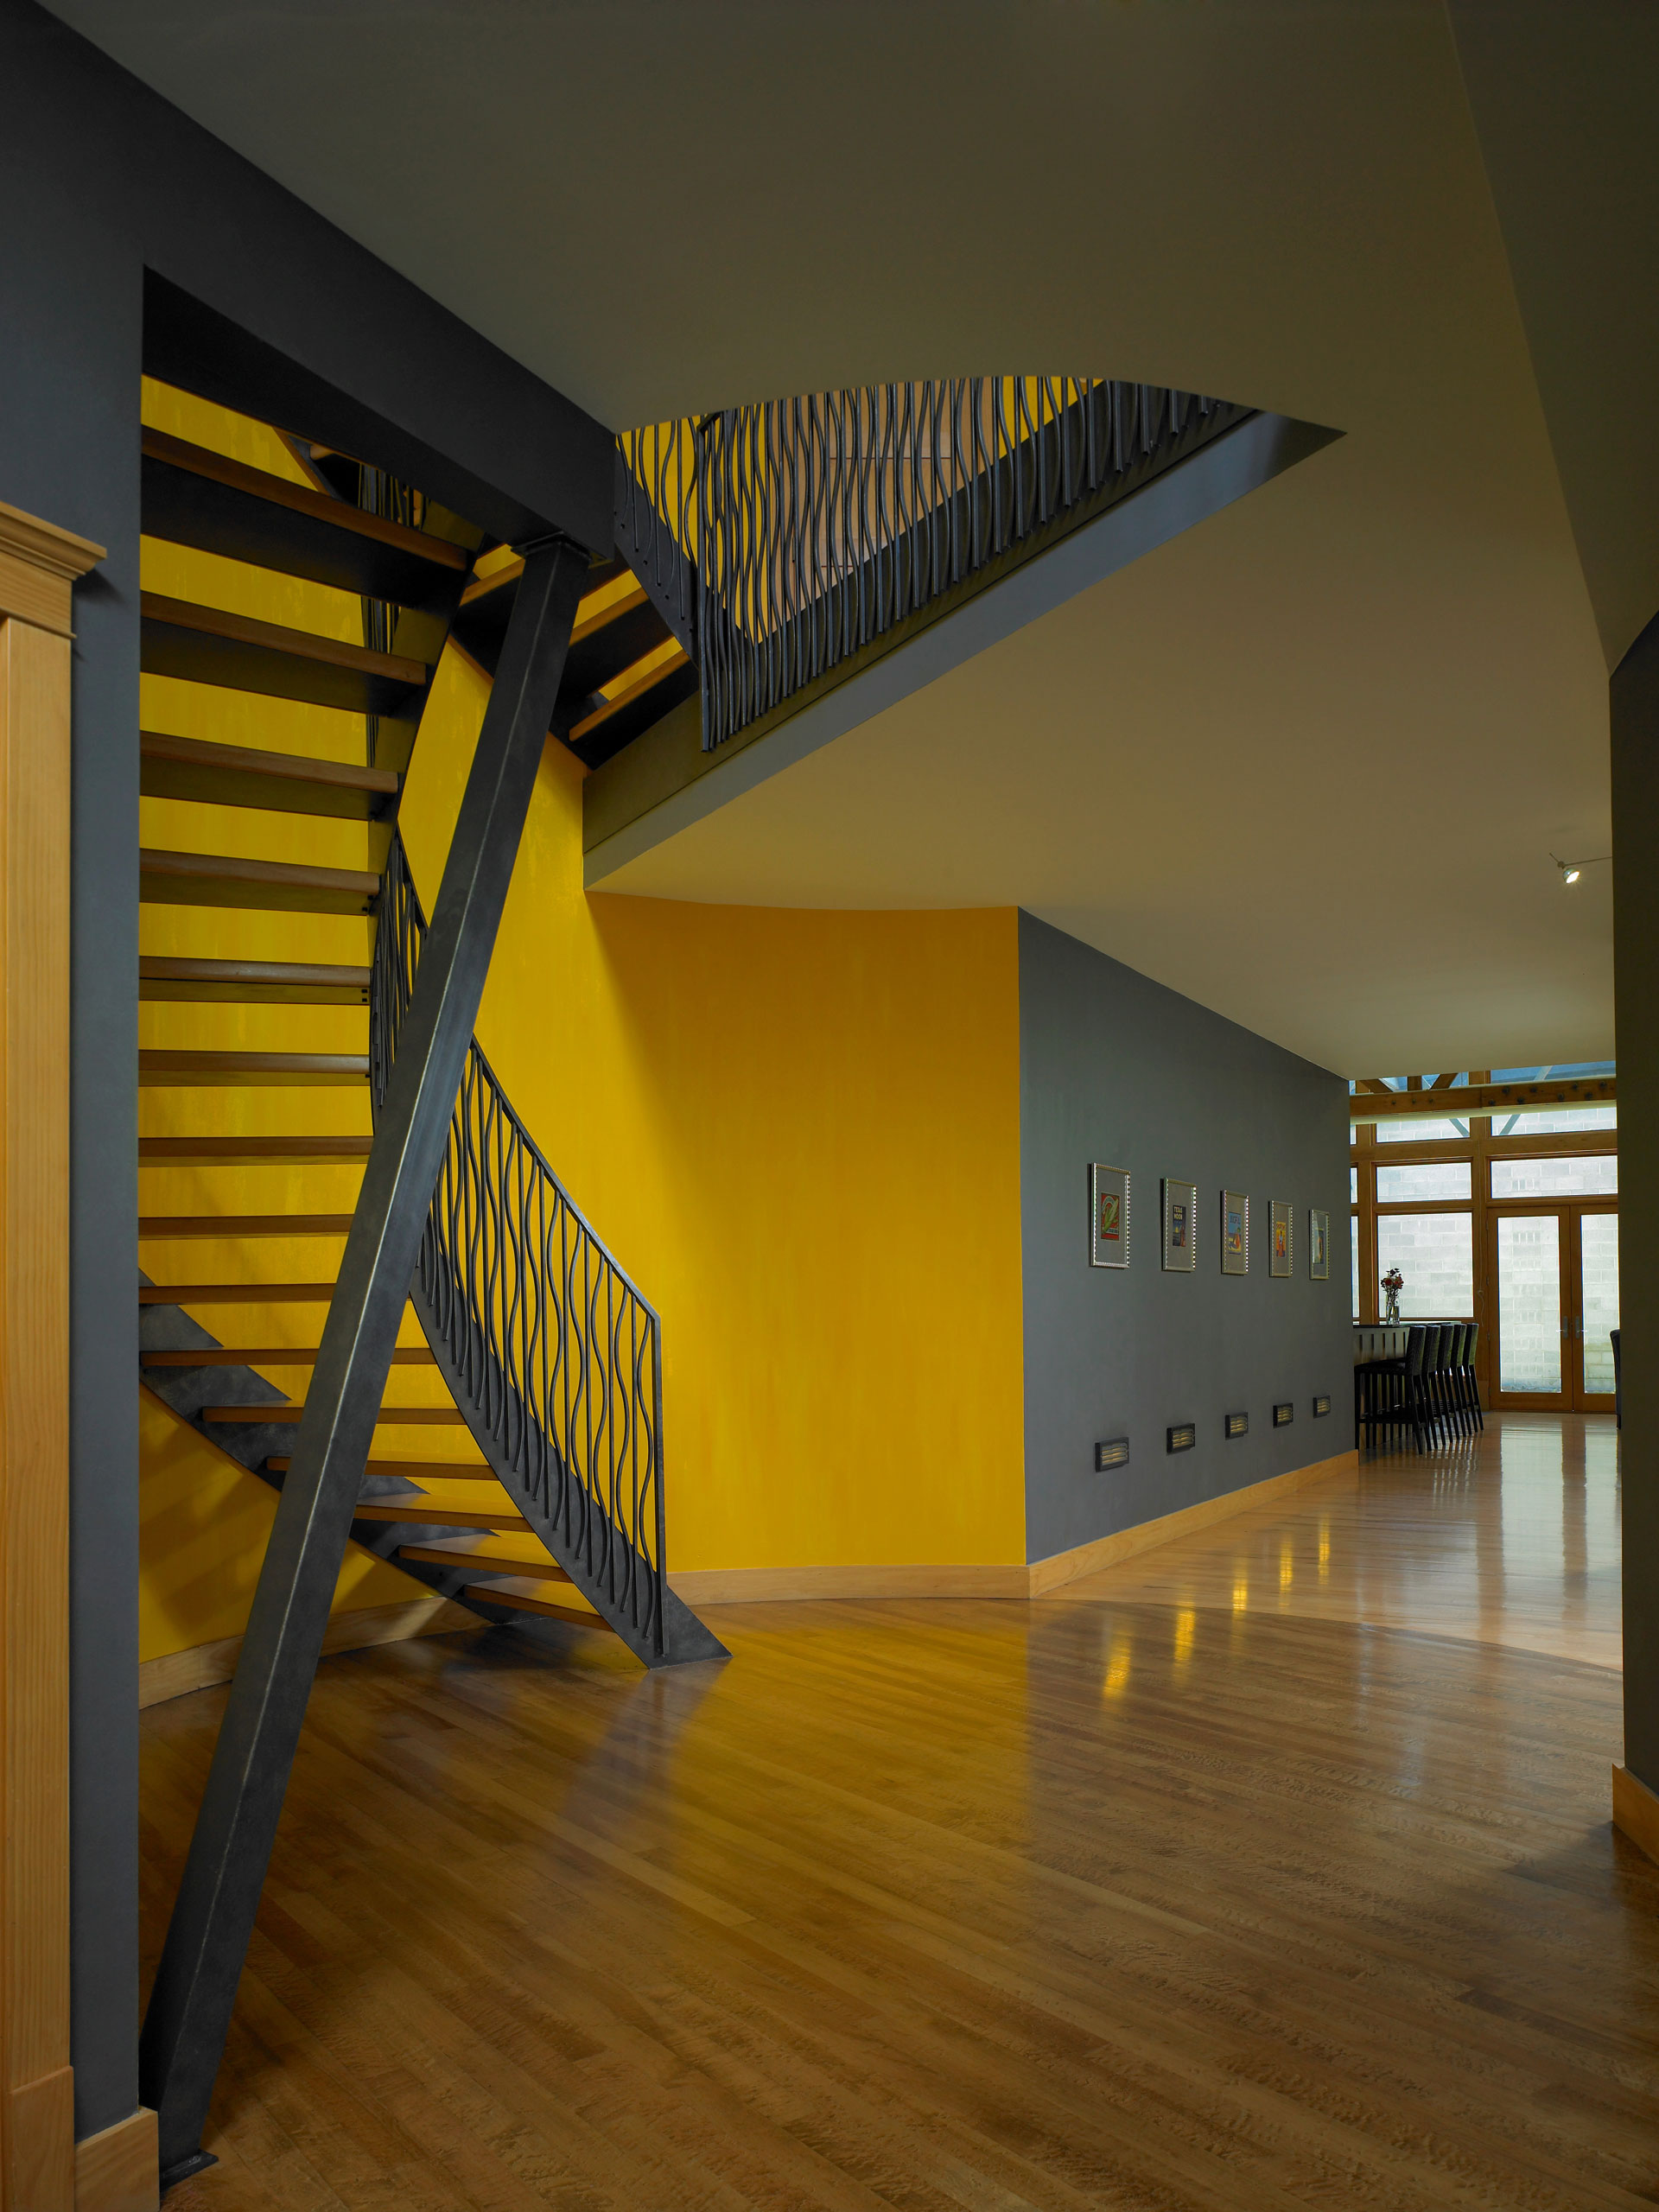 The soda pop factory staircase